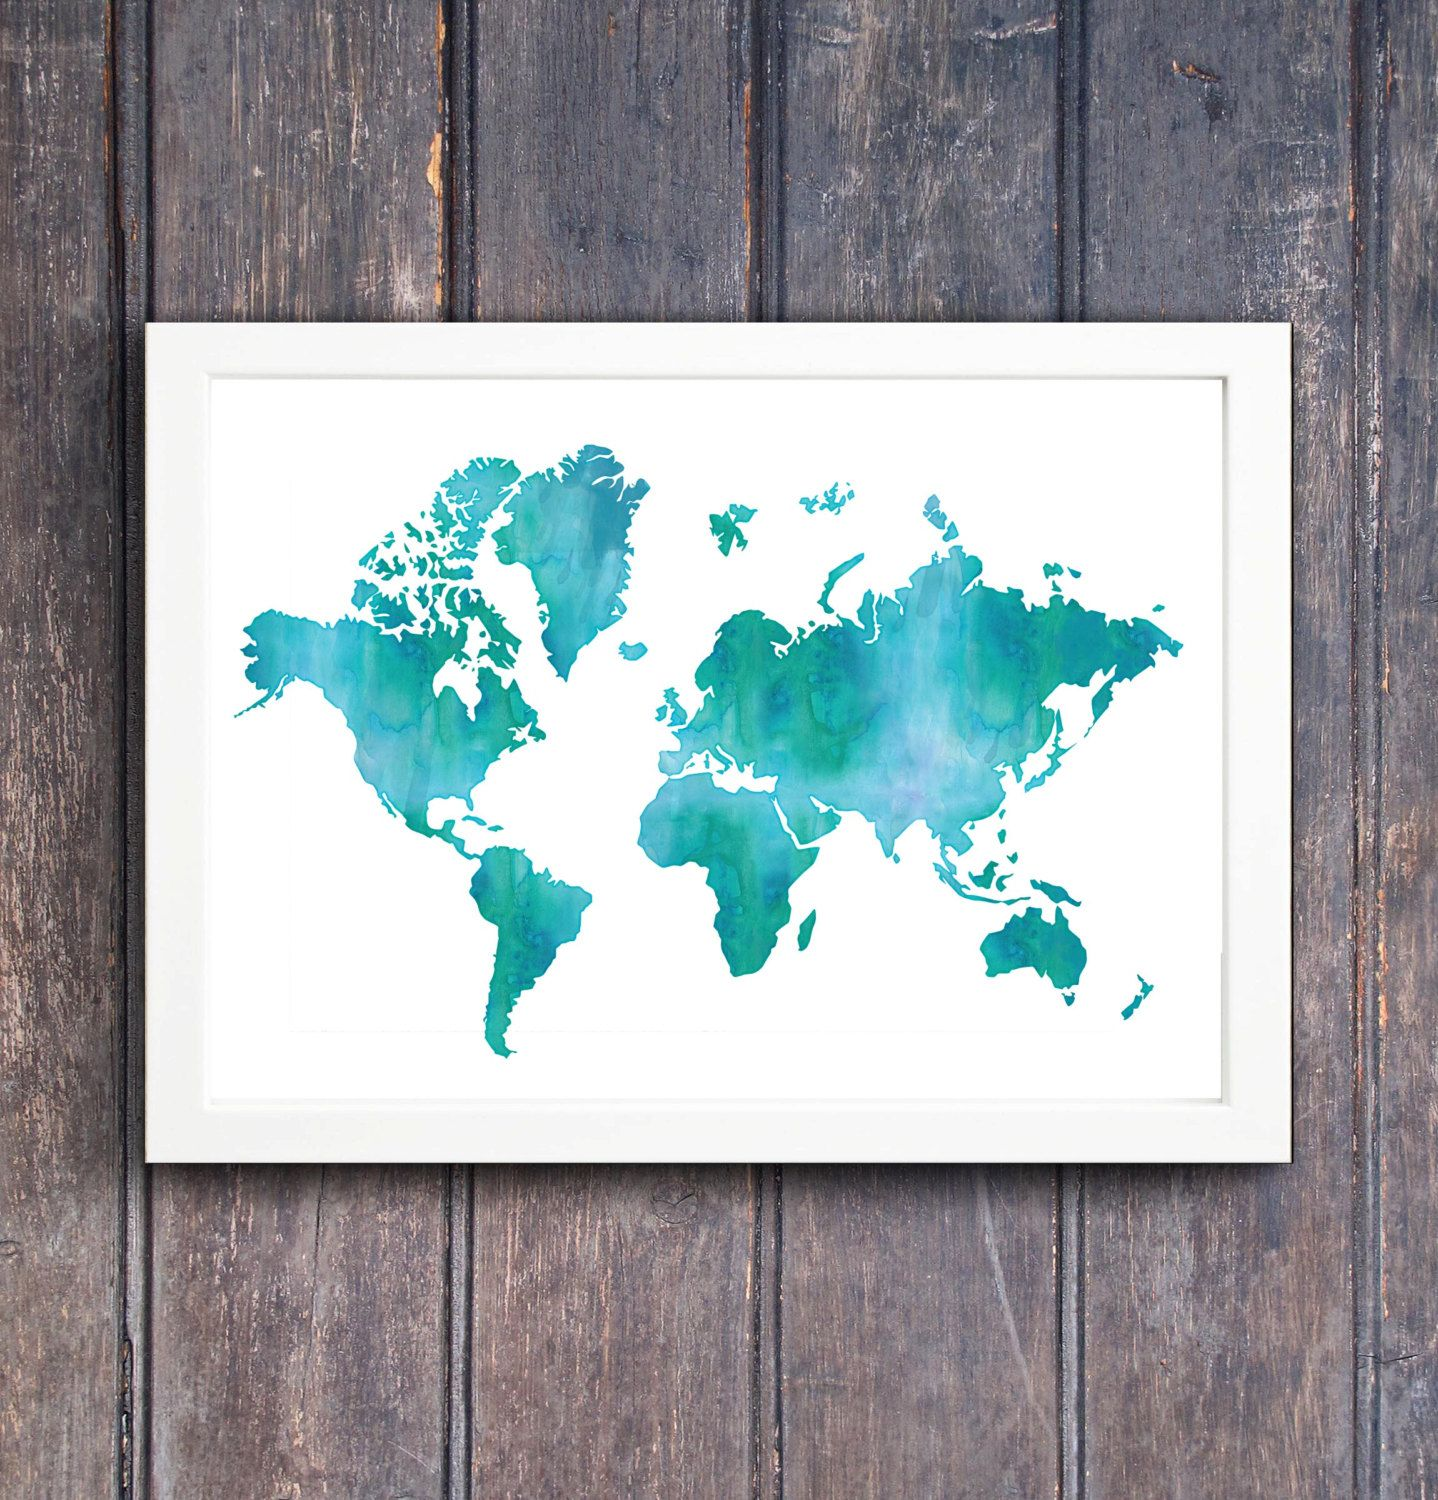 Large watercolor world map printable wall art instant download large watercolor world map printable wall art instant download 24x36 inches sciox Image collections